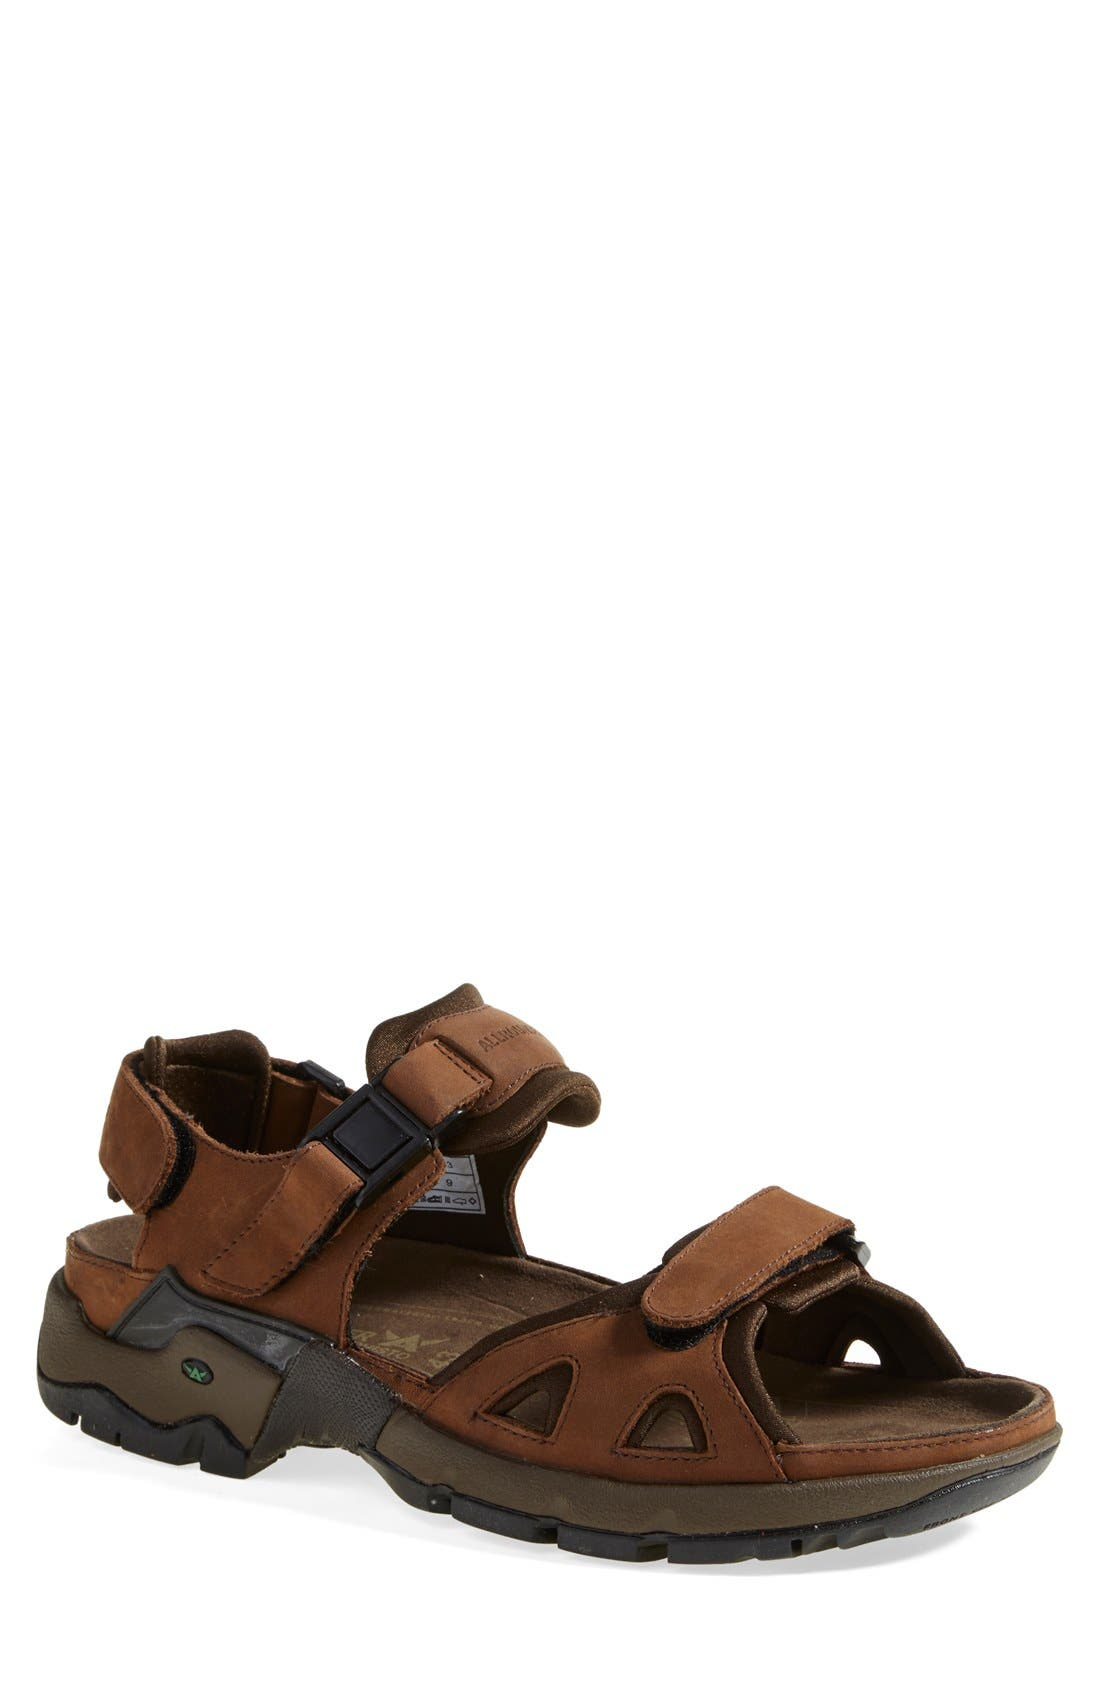 Main Image - Allrounder by Mephisto 'Alligator' Sandal (Men)